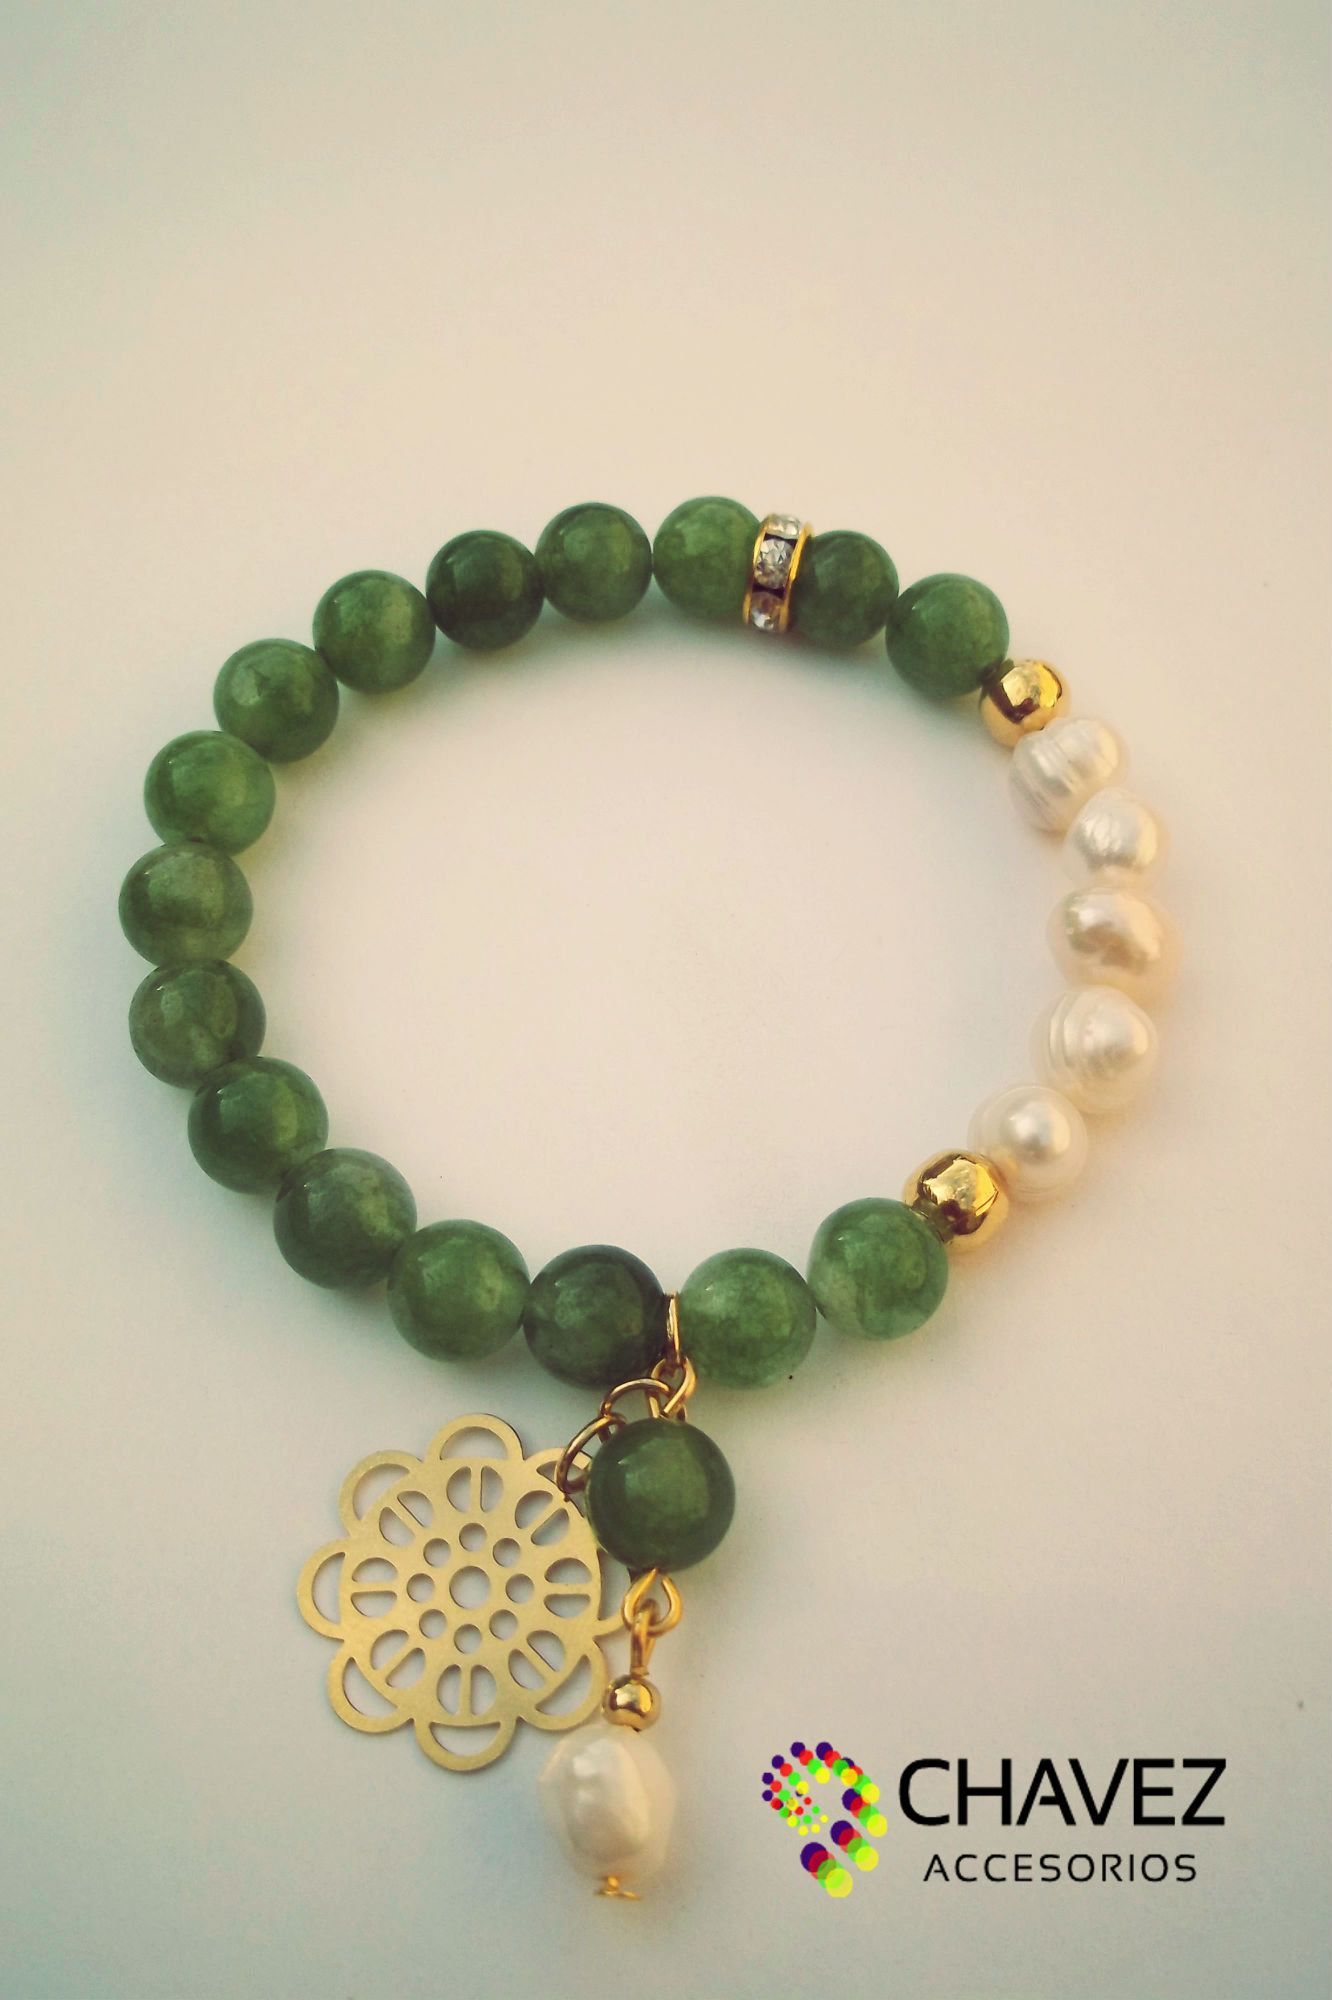 chain pin charm bracelets faceted jewelry jade bracelet skull